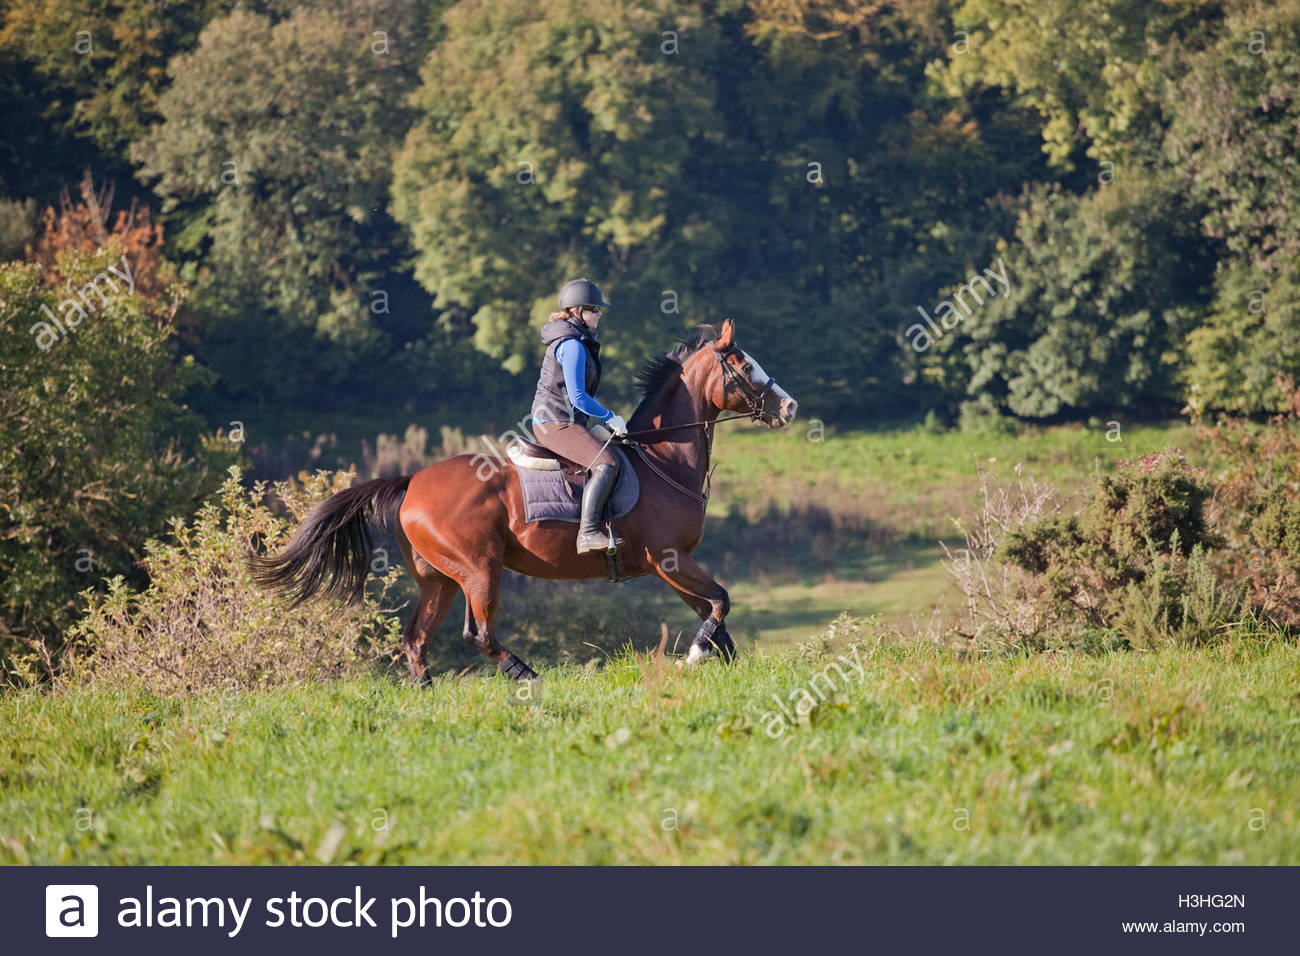 Young woman cantering a horse in an open field UK - Stock Image